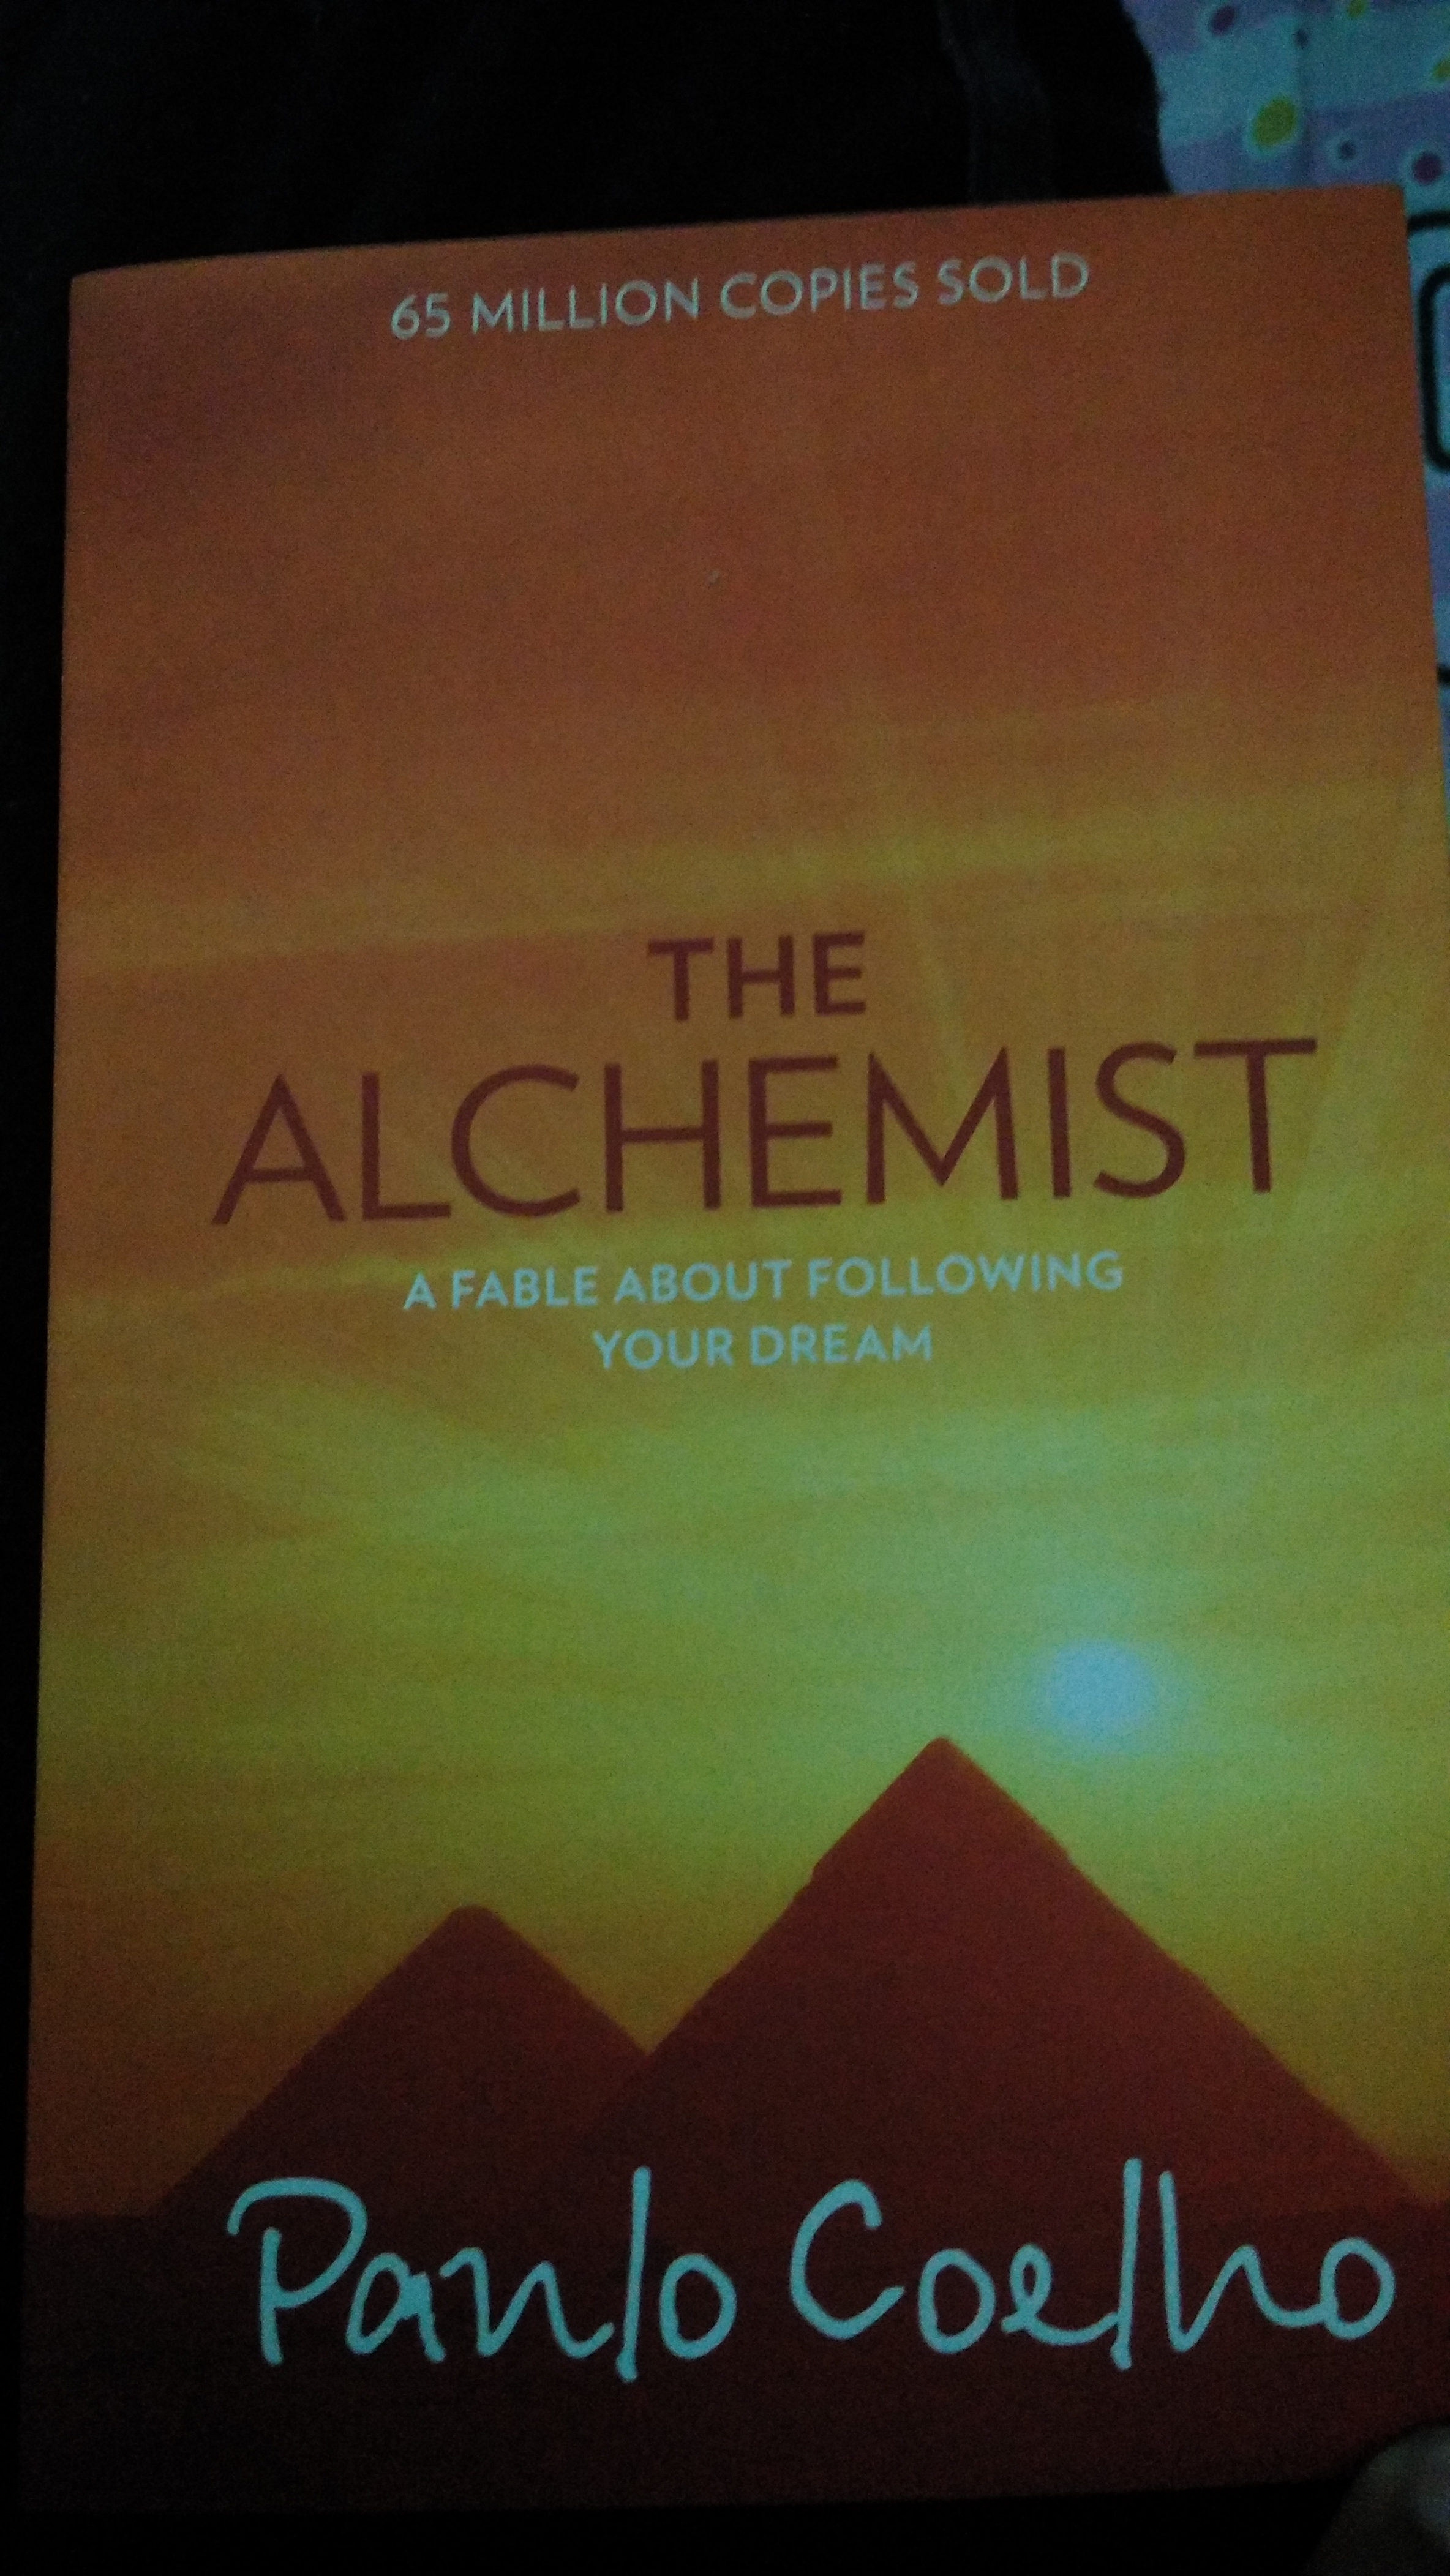 the alchemist written by paulo coelho Written by paulo coelho, narrated by jeremy irons download the app and start listening to the alchemist today - free with a 30 day trial keep your audiobook forever, even if you cancel.